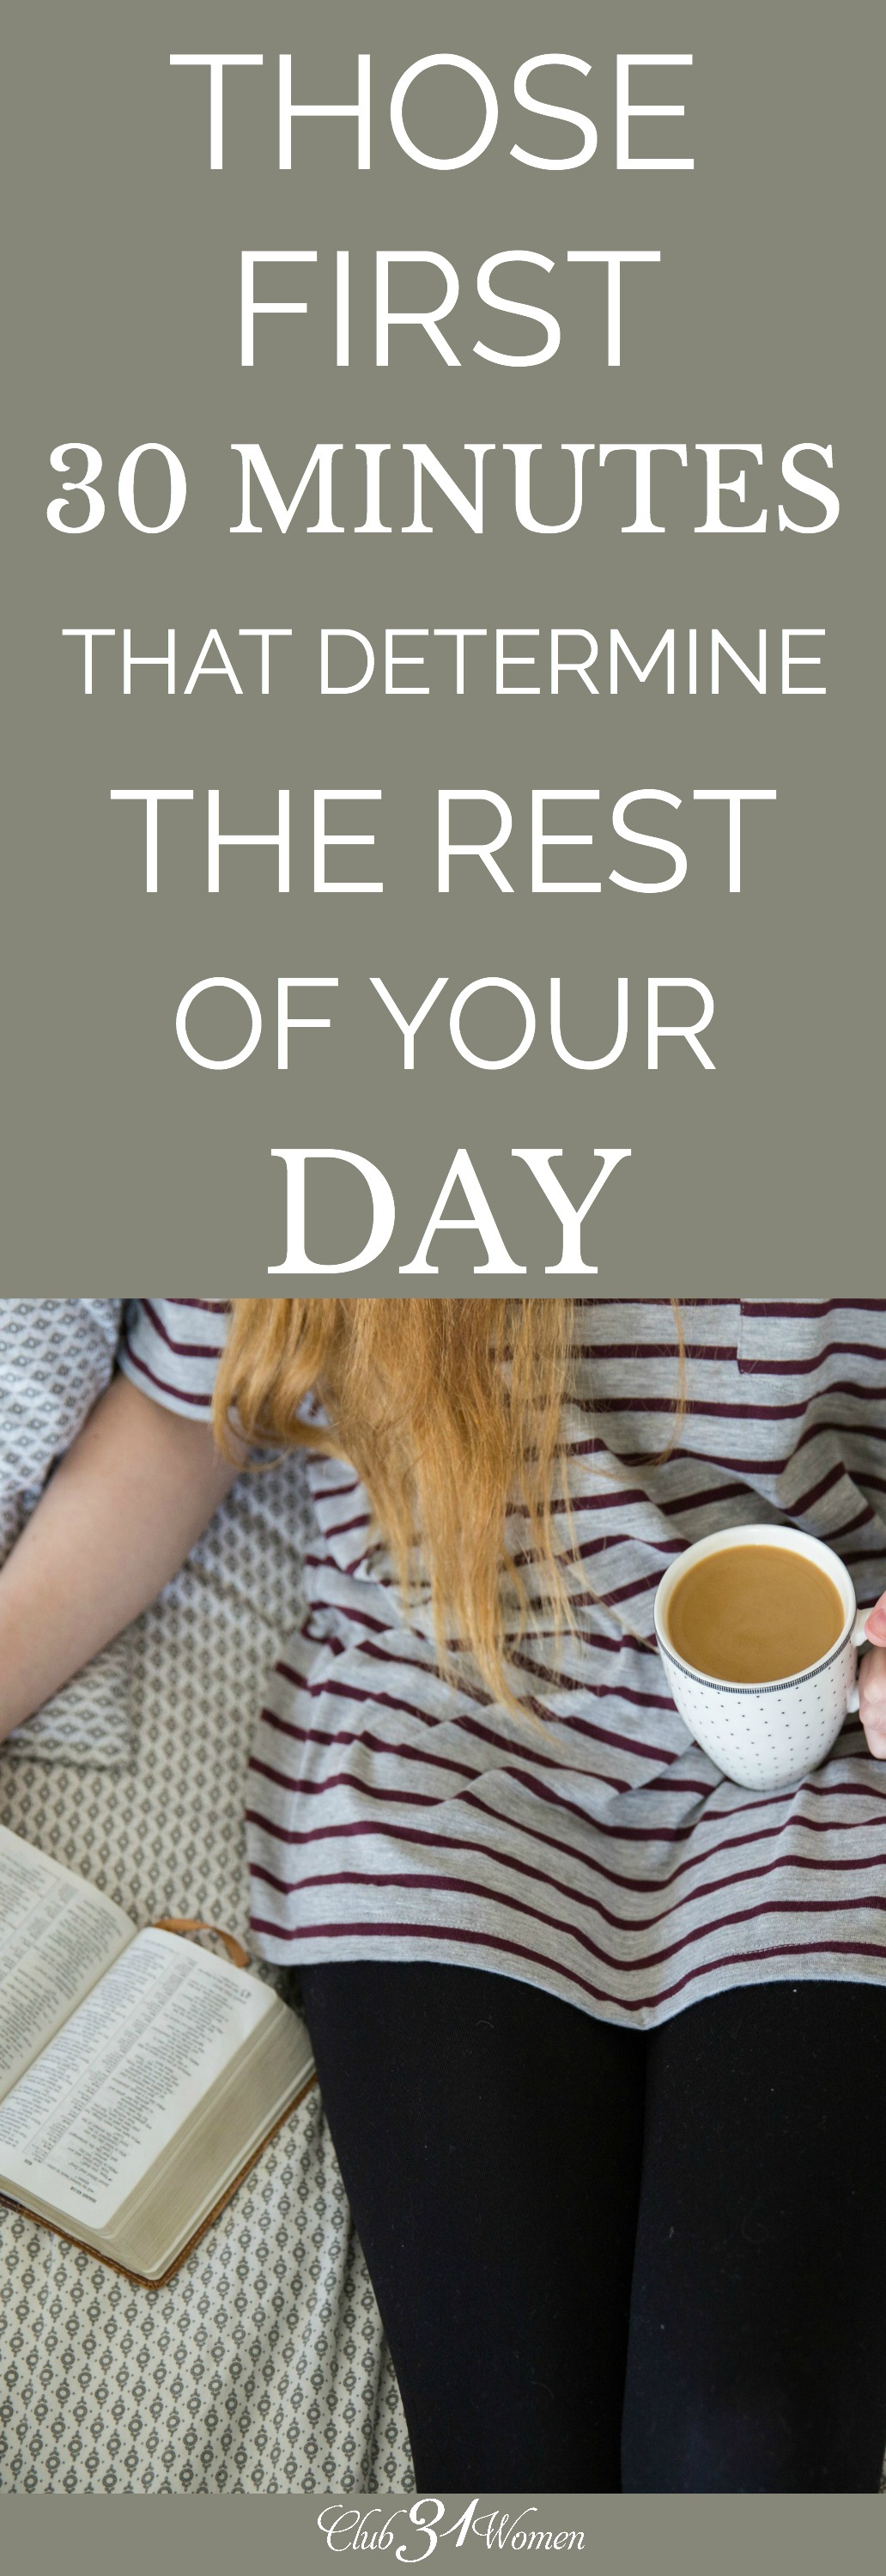 How do you start your day? The way it begins has a profound impact on you and your attitude - as well as the rest of your family and your life together. via @Club31Women